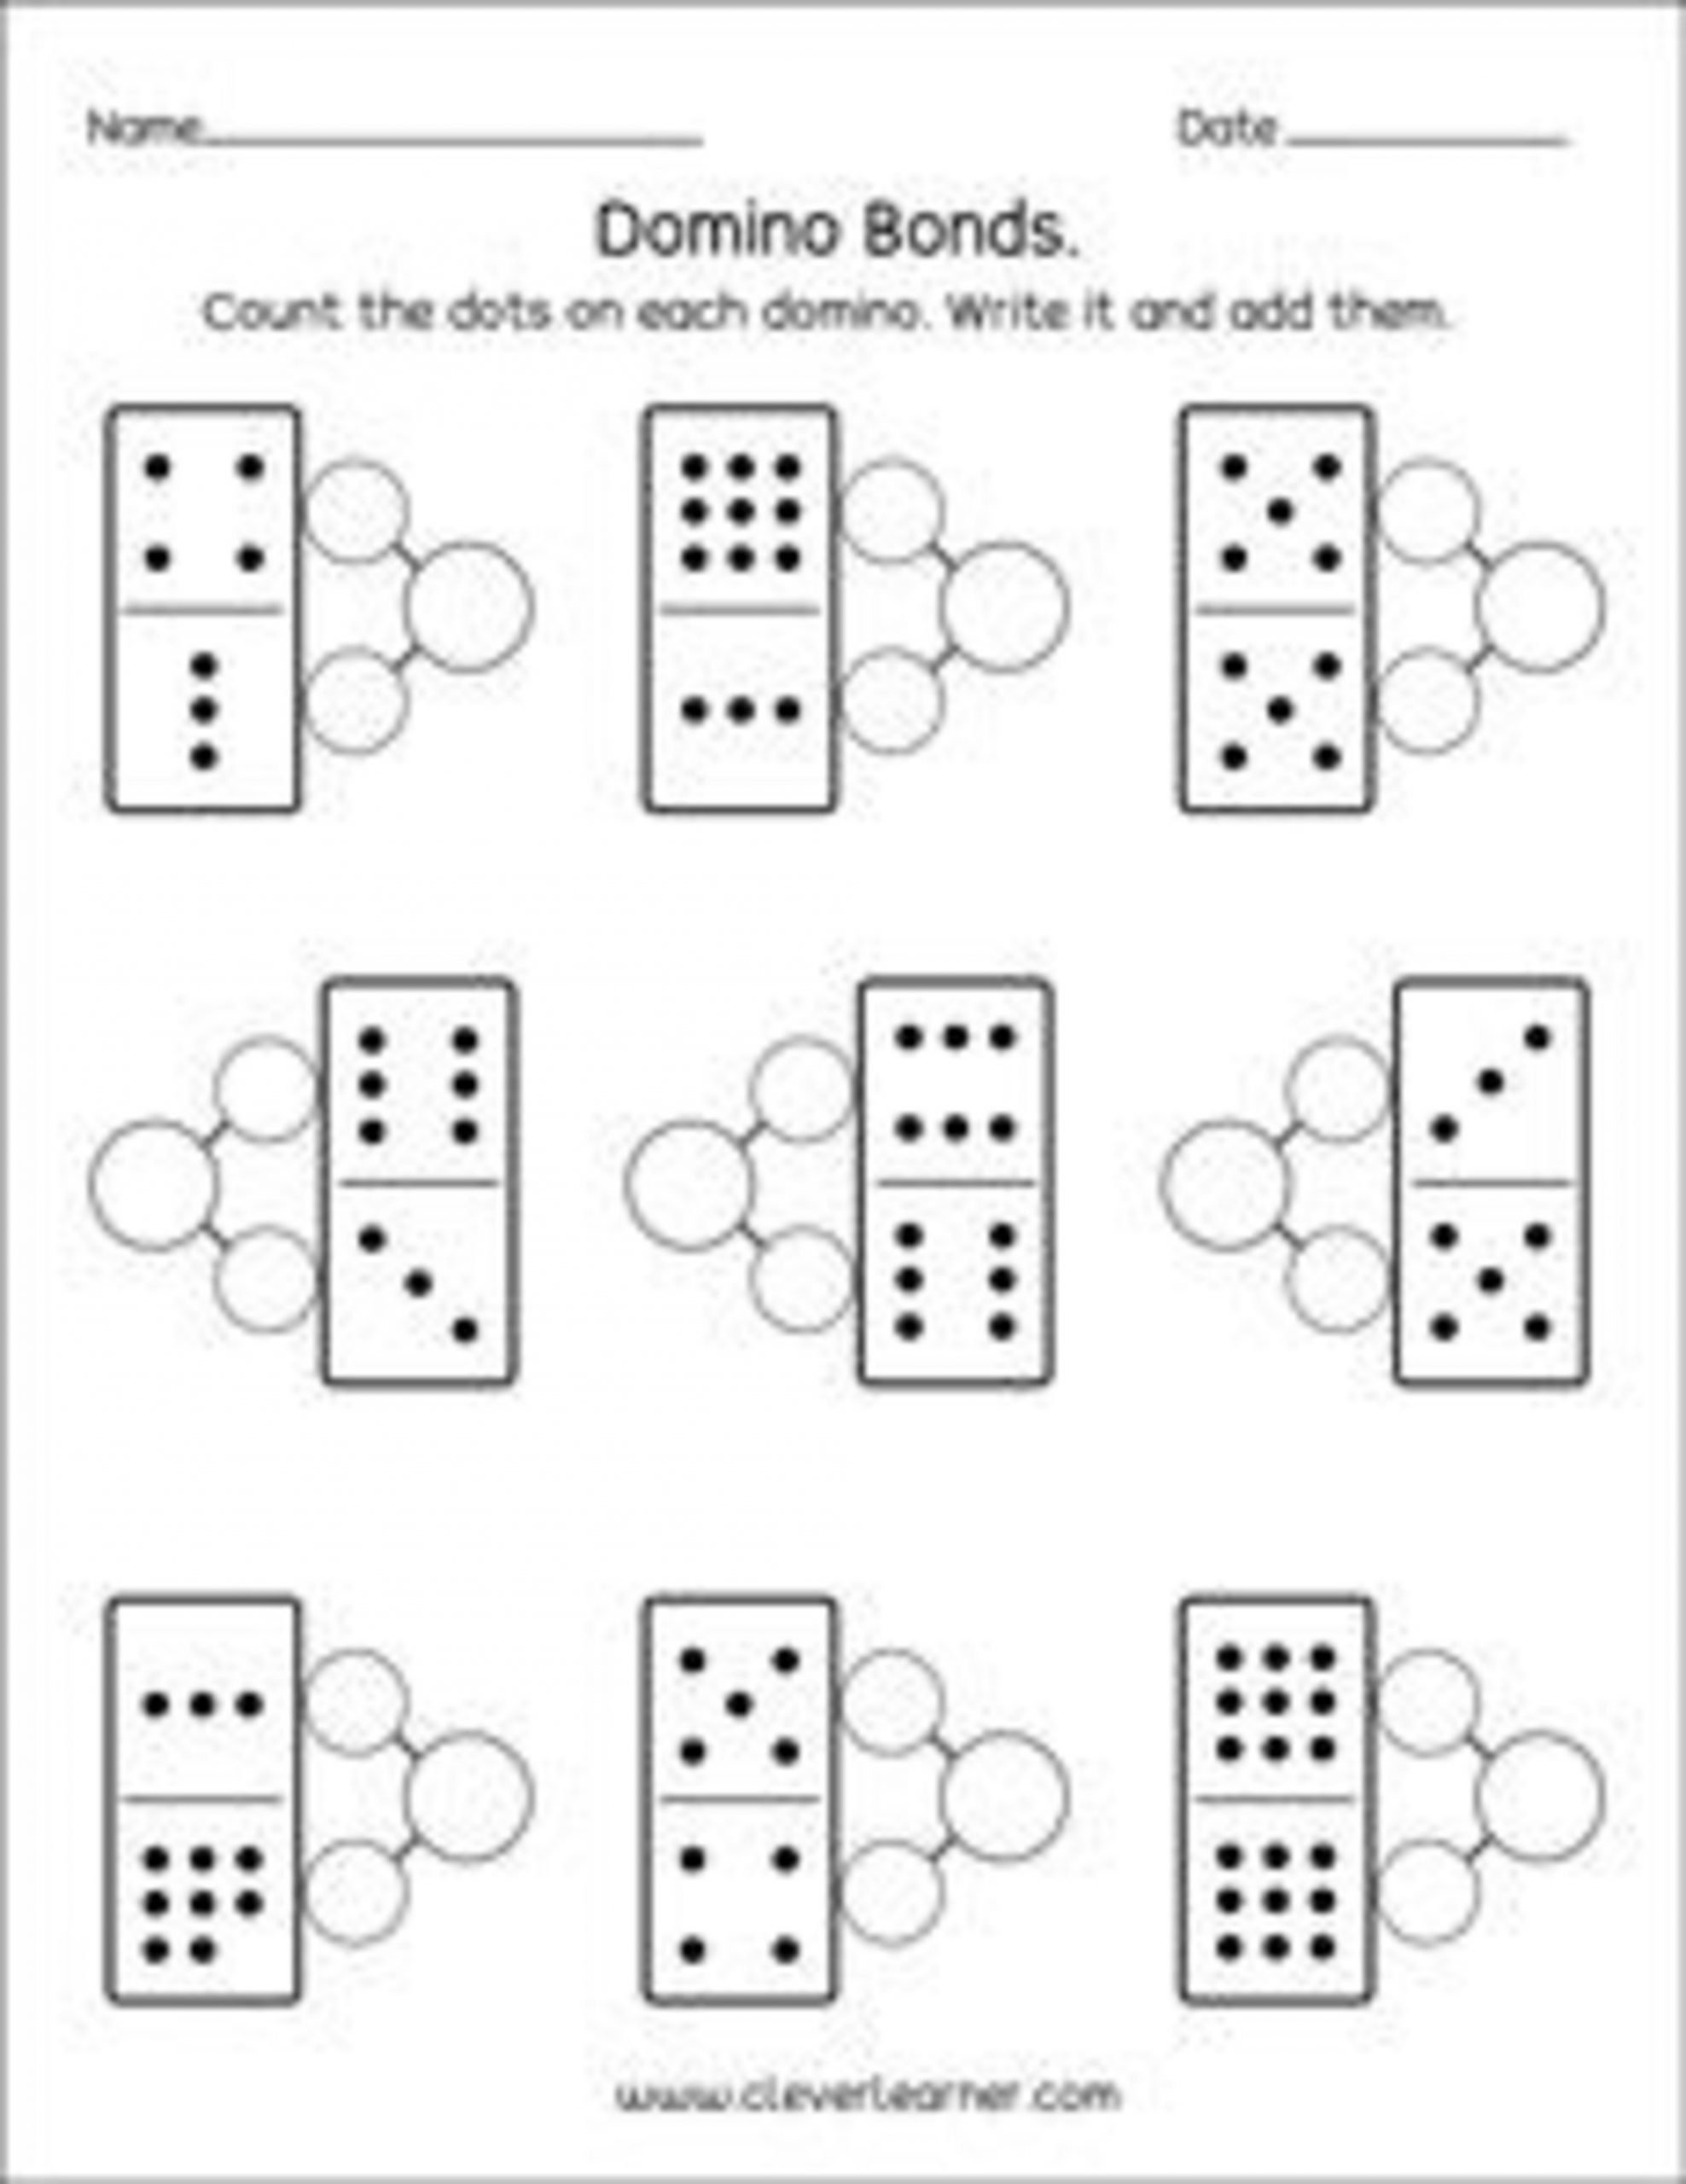 Number Bonds Worksheets Kindergarten Number Bonds Worksheets for Printable Number Bonds